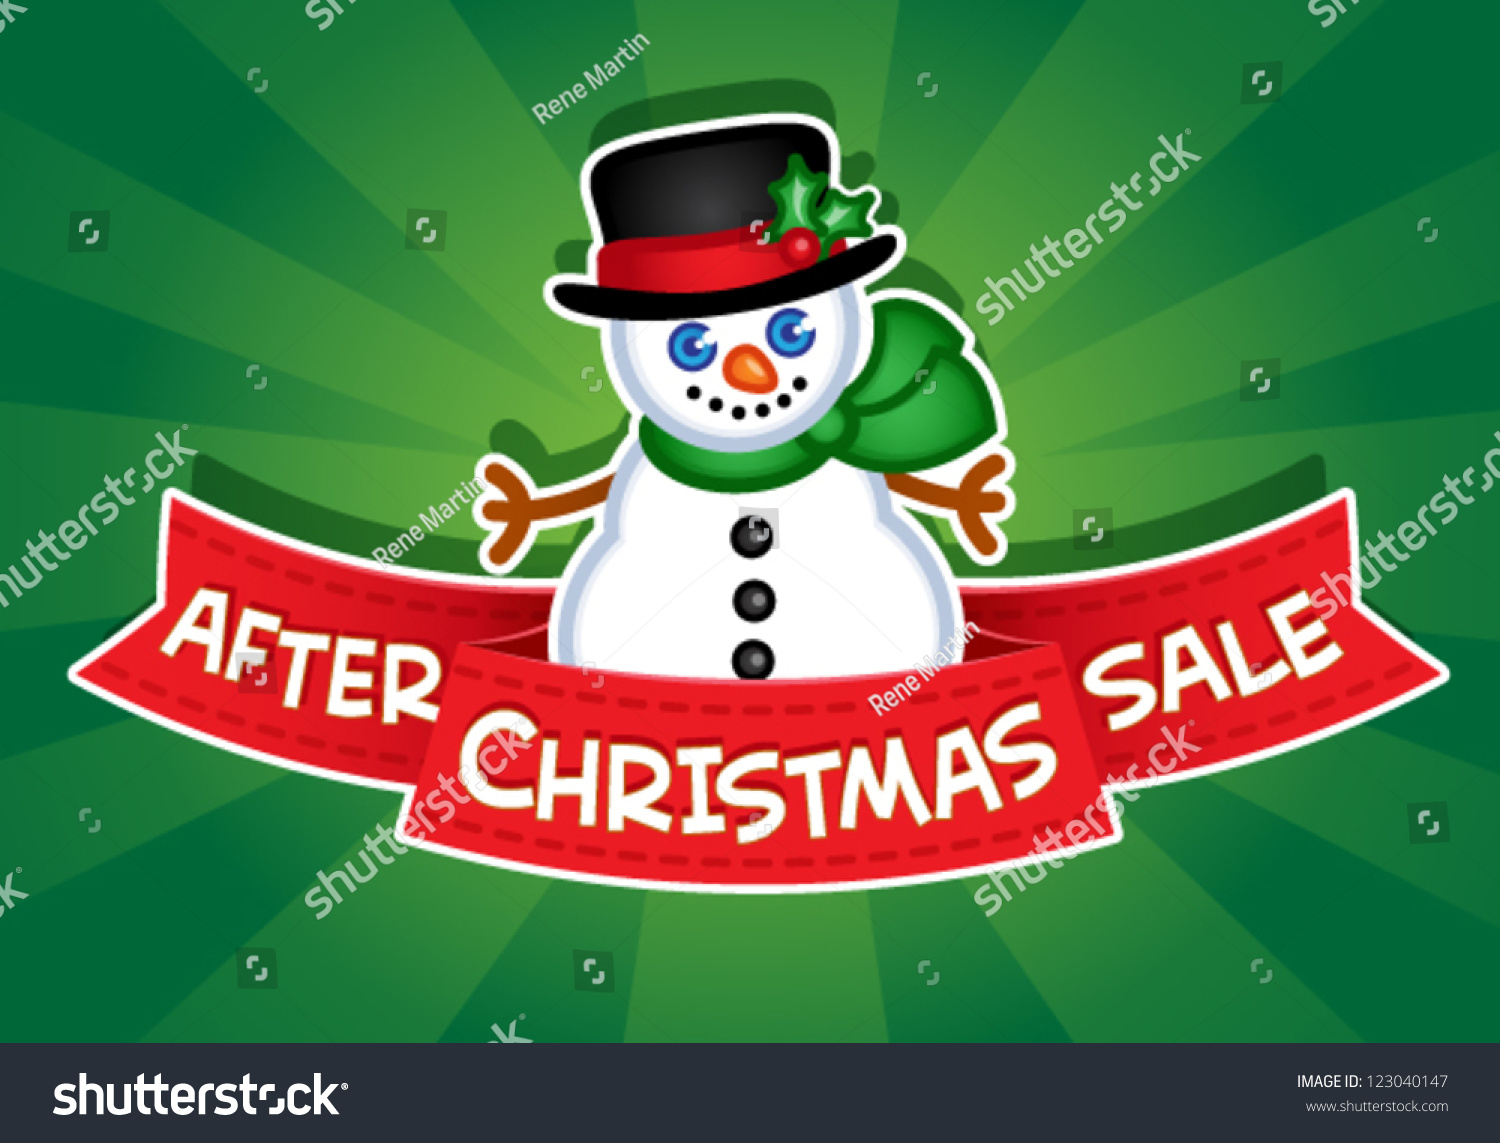 After christmas sale banner snowman stock vector 123040147 for After christmas christmas decoration sales